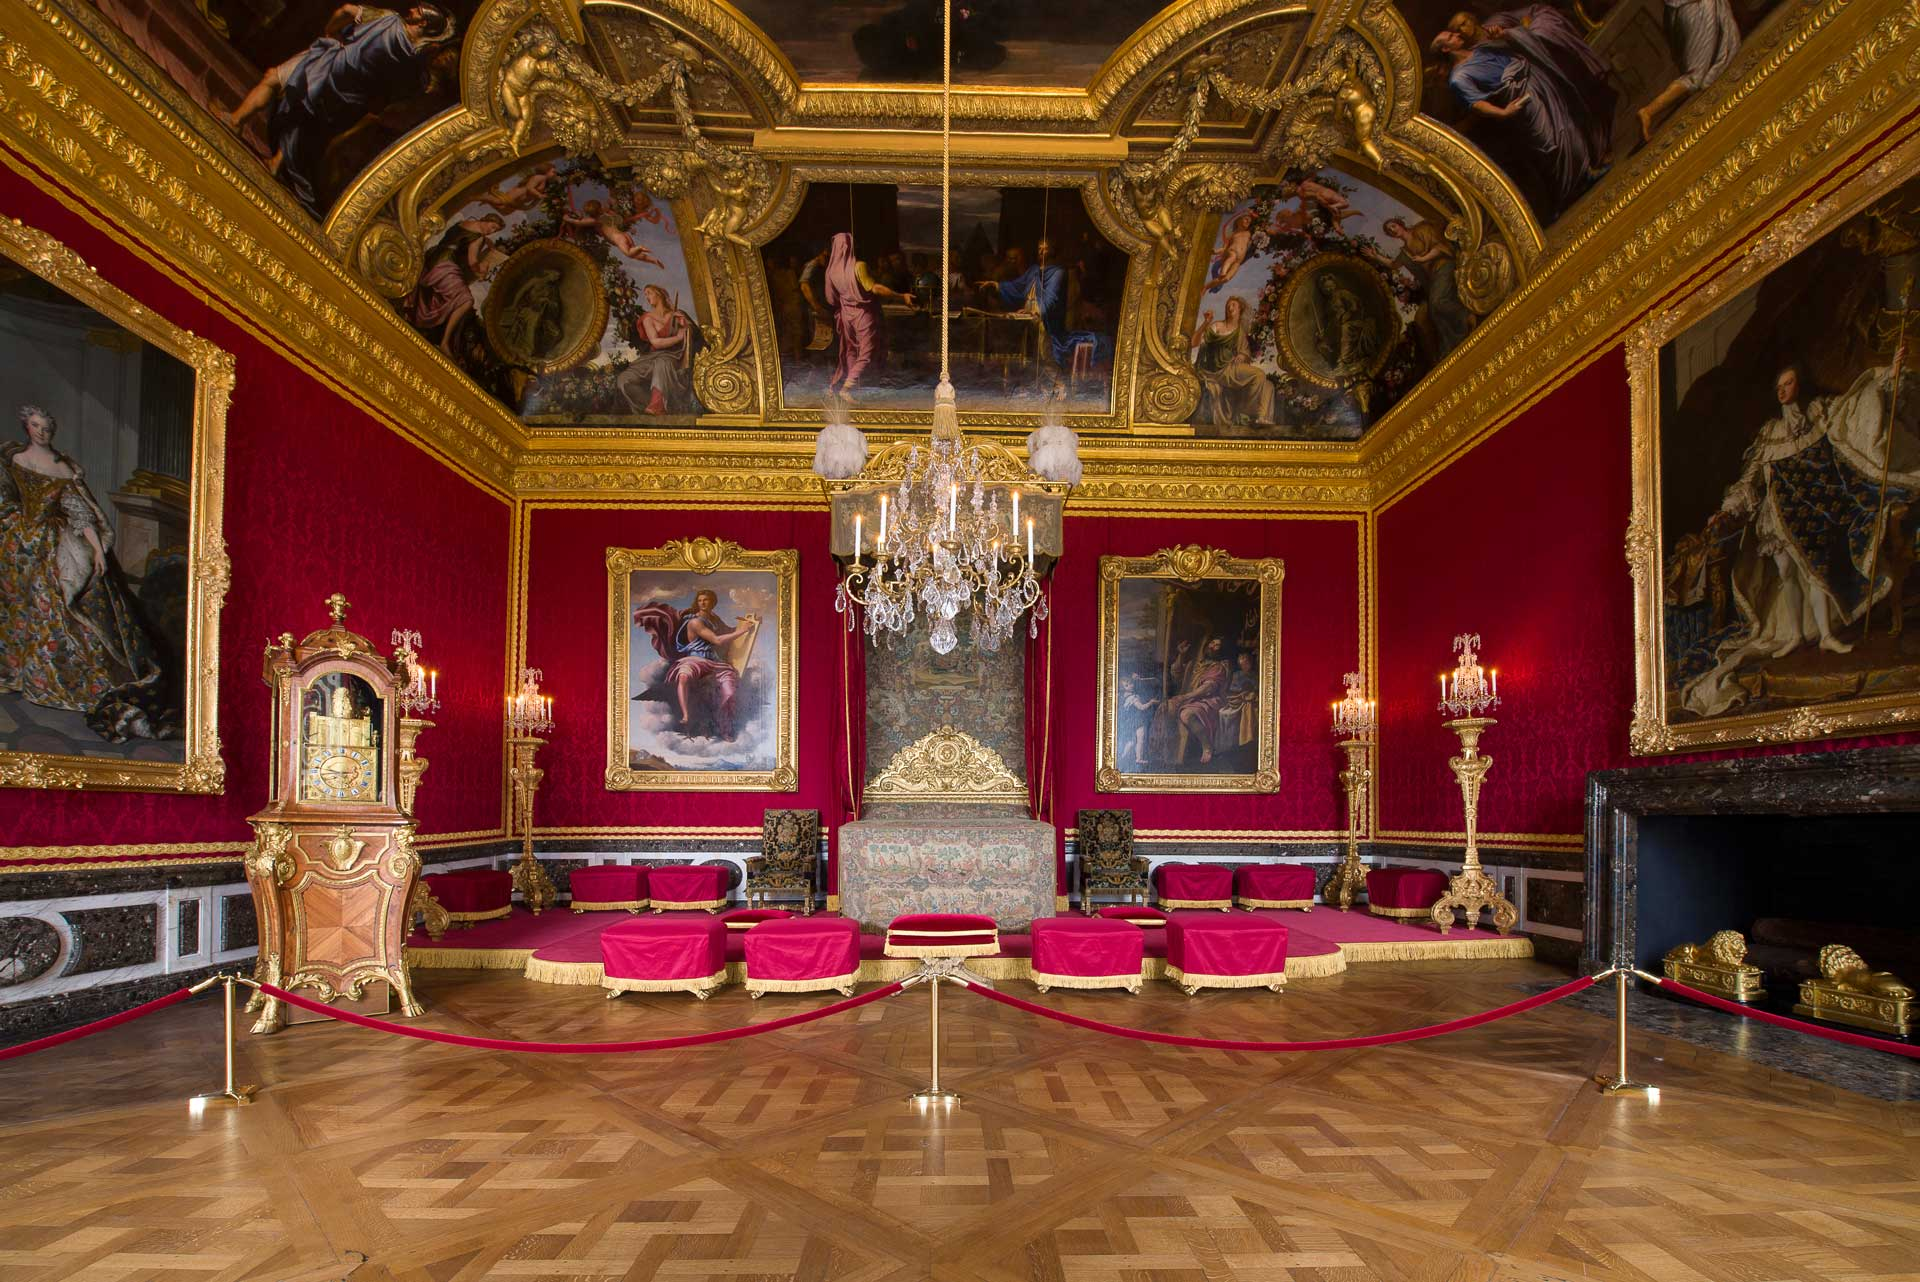 Don T Miss In The Palace Welcome To The Palace Of Versailles